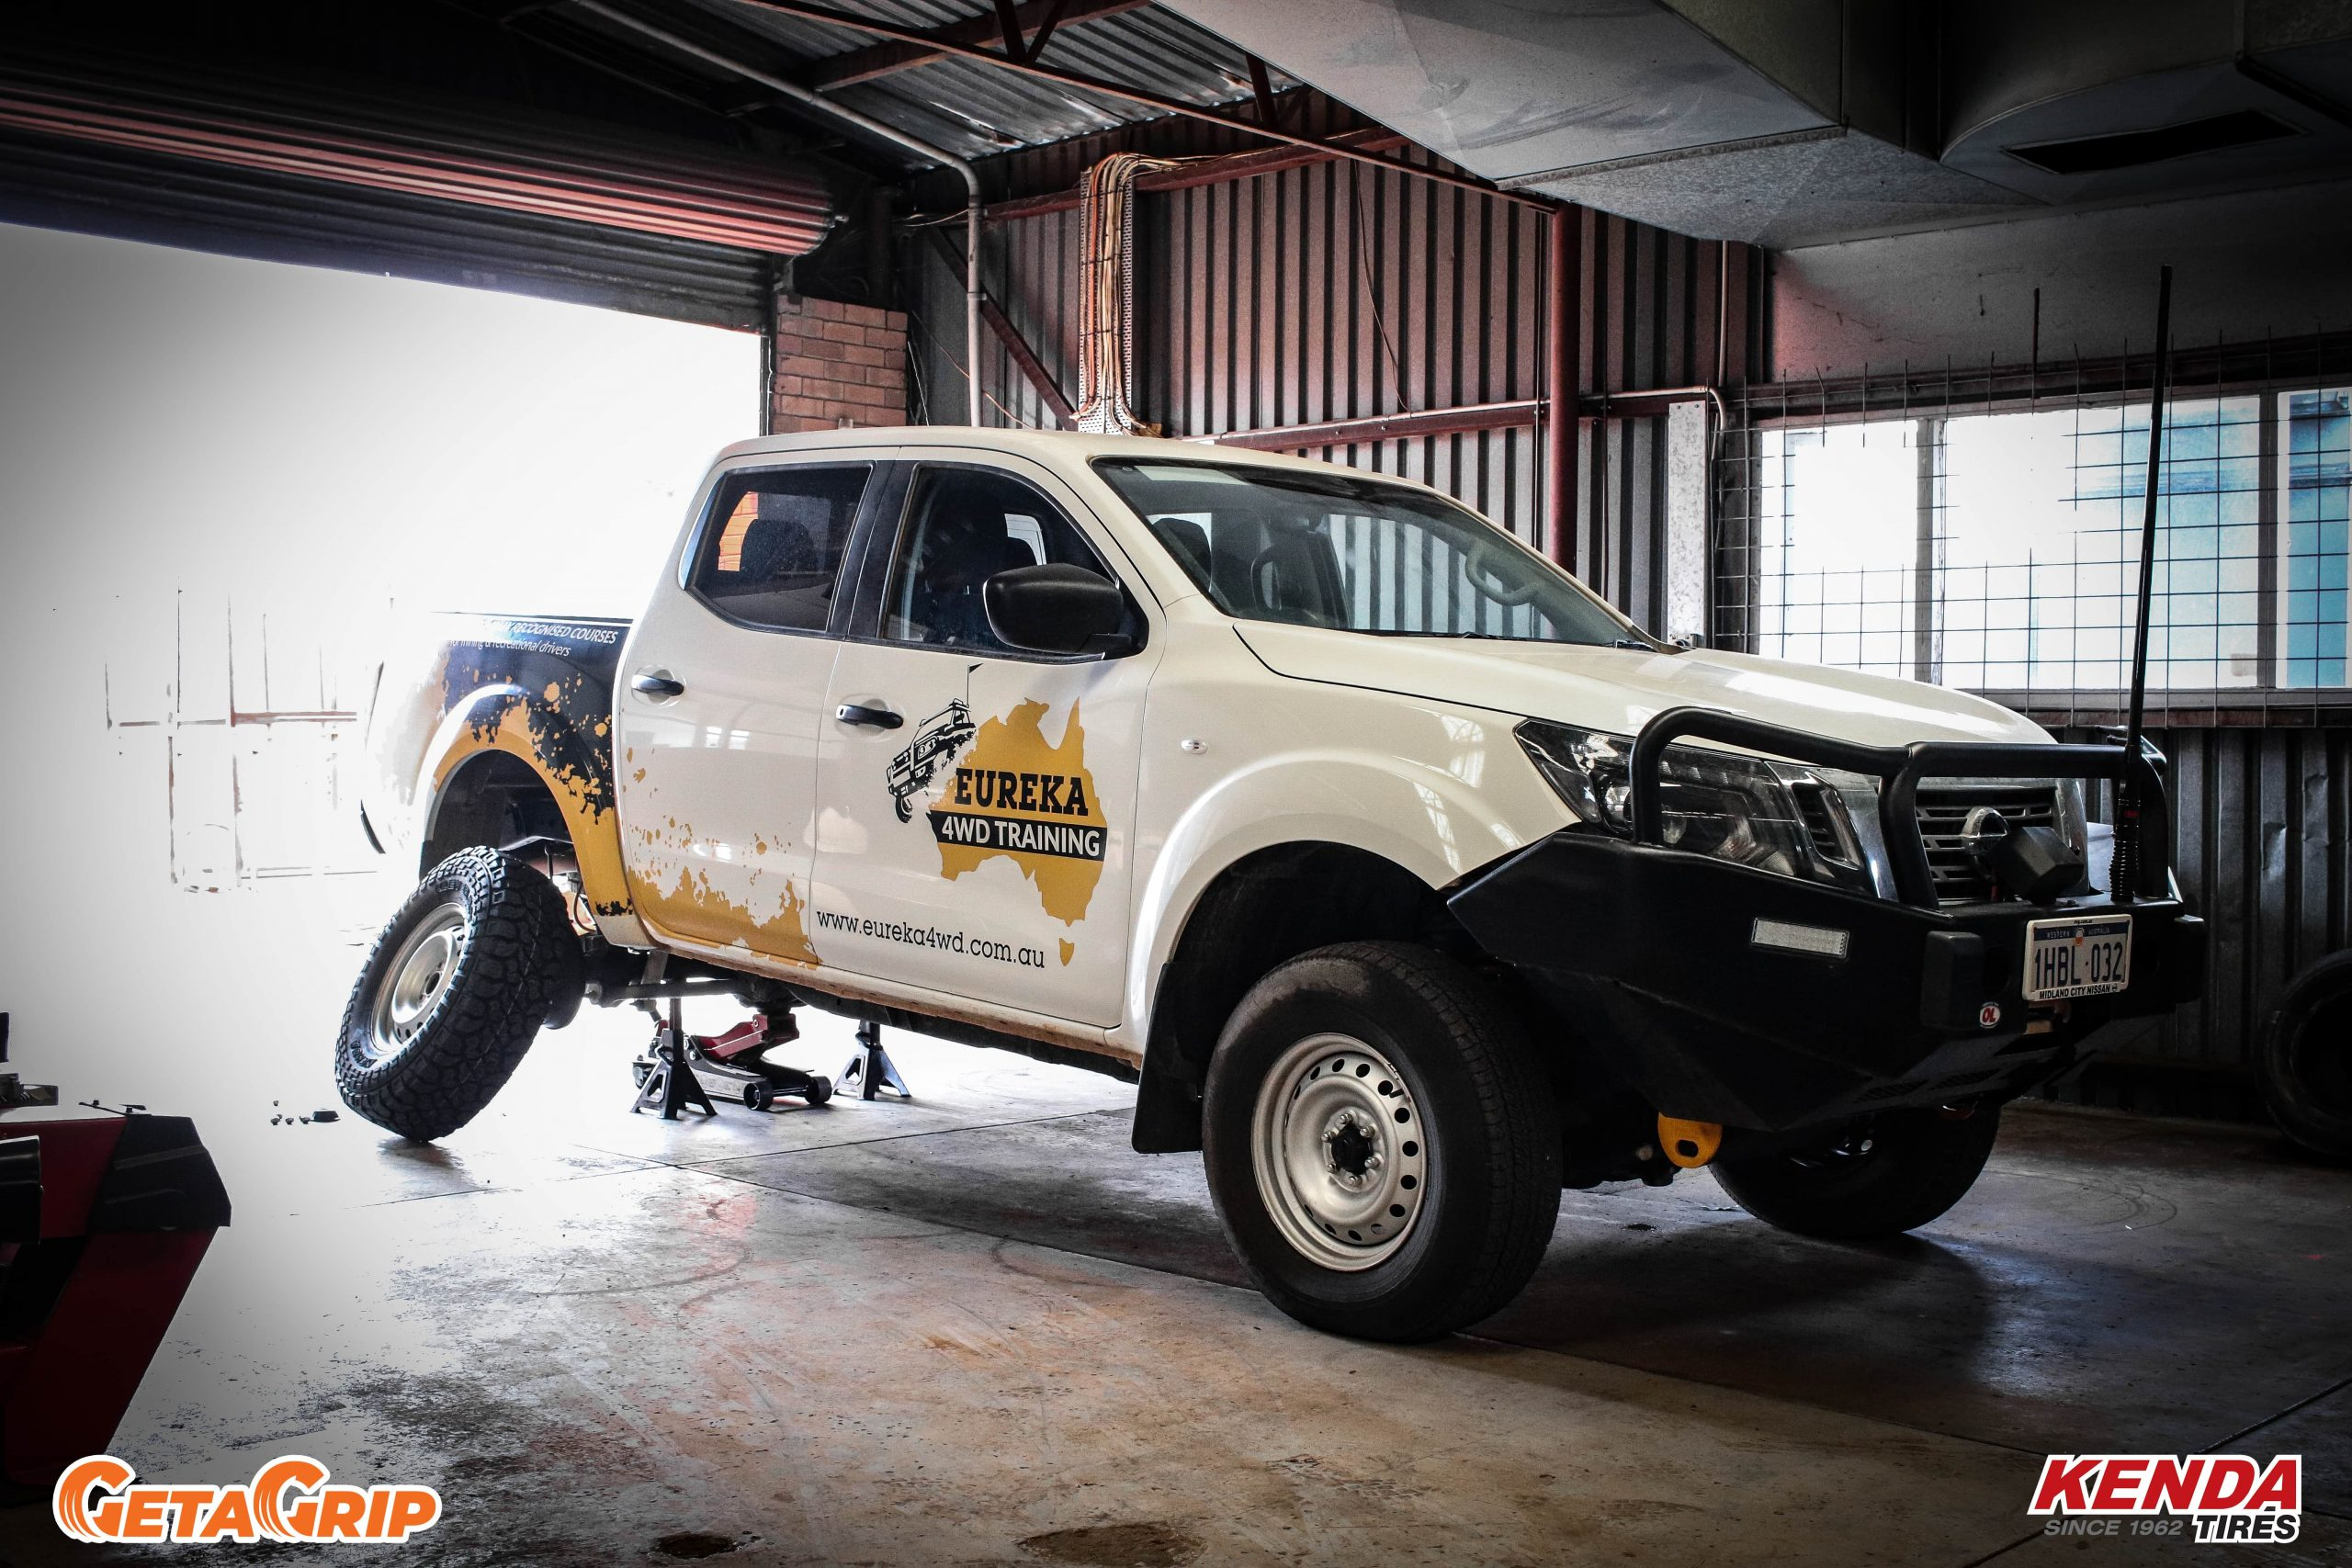 Getting some Kenda offroad tyres fitted to our Navara